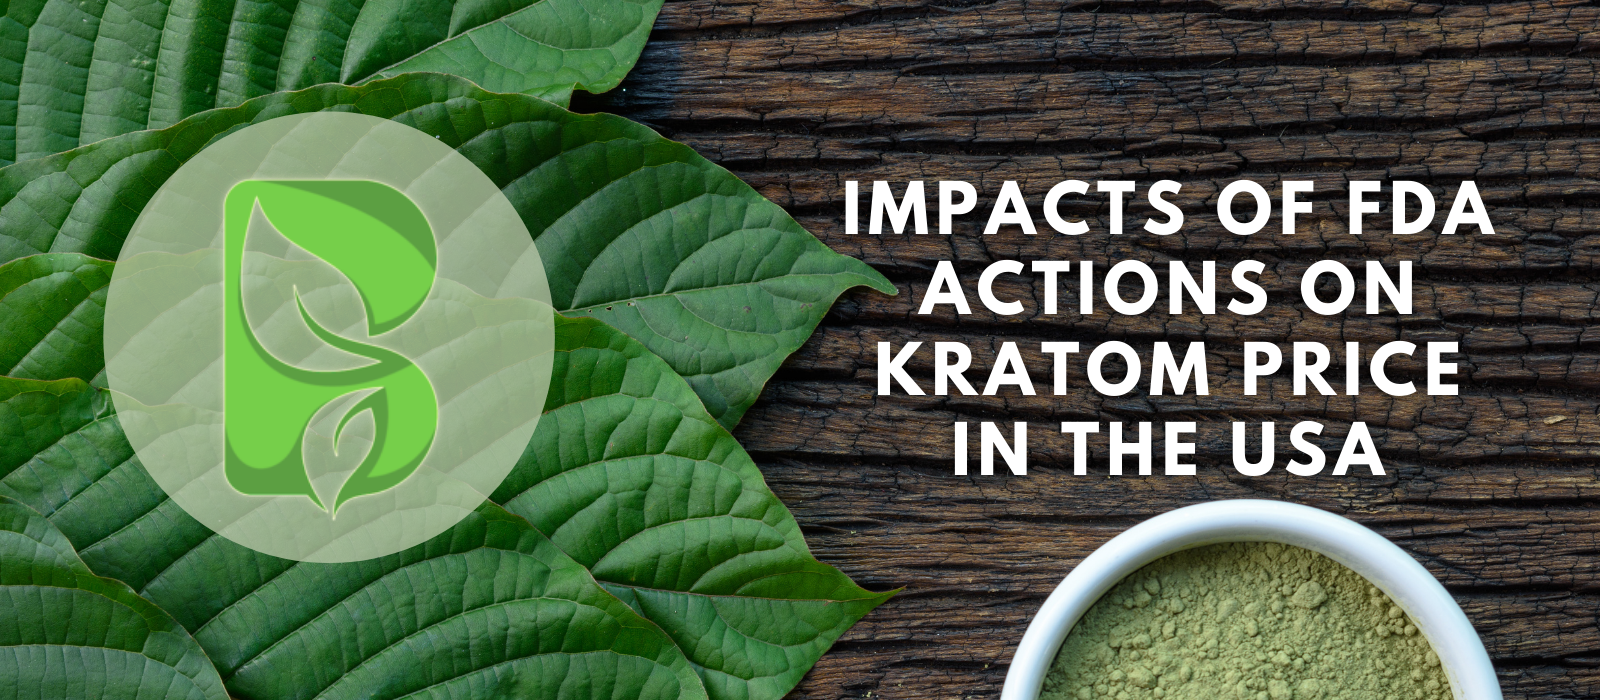 Impacts of FDA Actions on Kratom Price in the USA